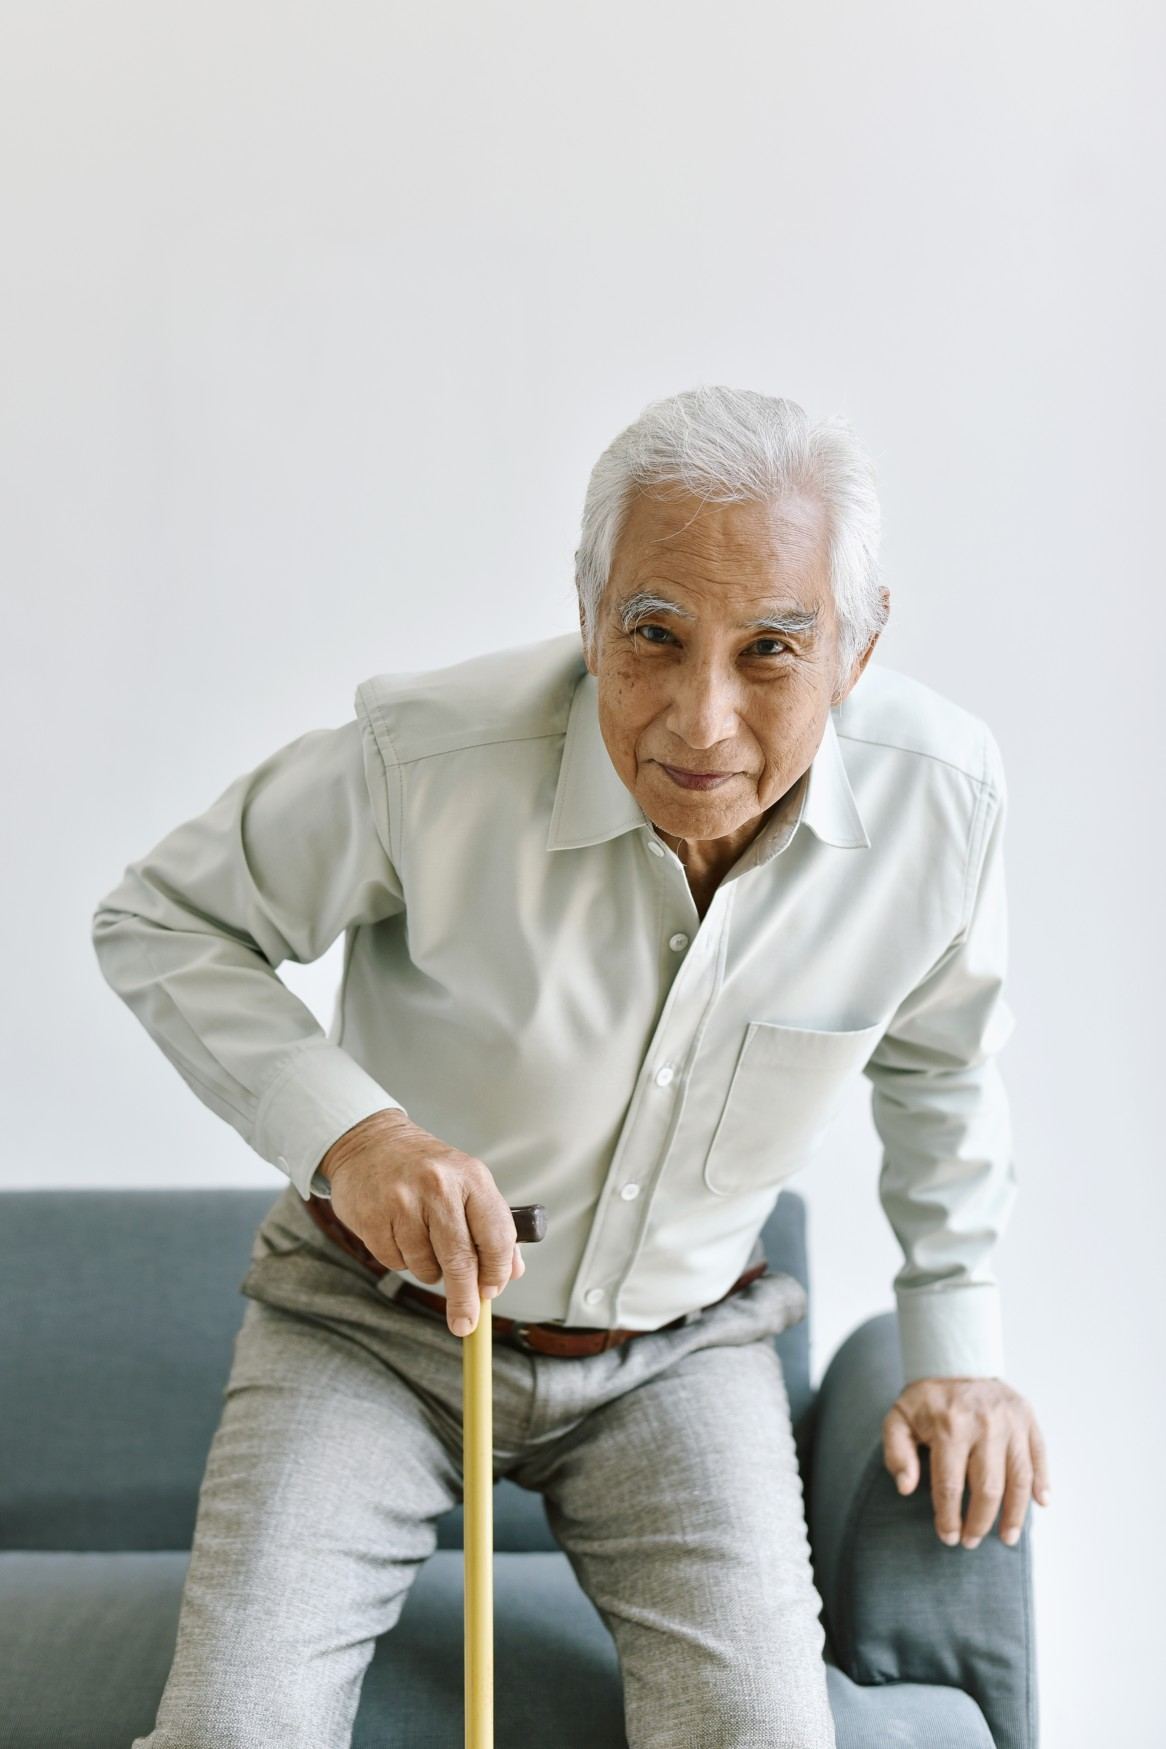 disable-and-injury-senior-asian-man-try-to-stand-up-with-walking-cane-knee-pain-and-joint-disease-in_t20_znGp7a